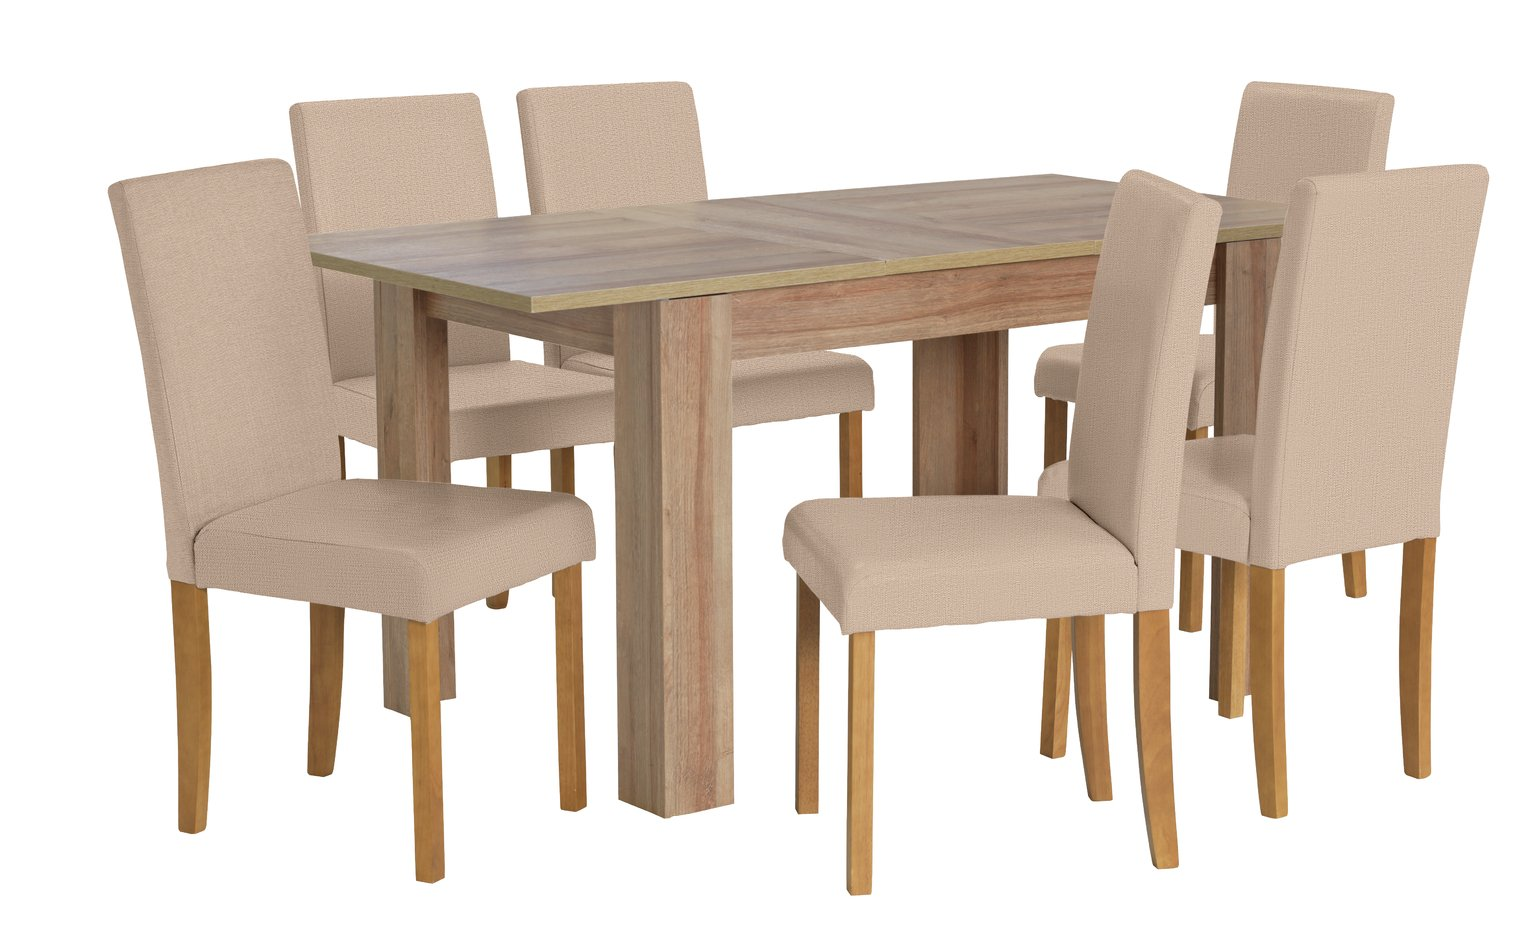 Image of HOME Miami Extendable Dining Table & 6 Chairs - Oatmeal